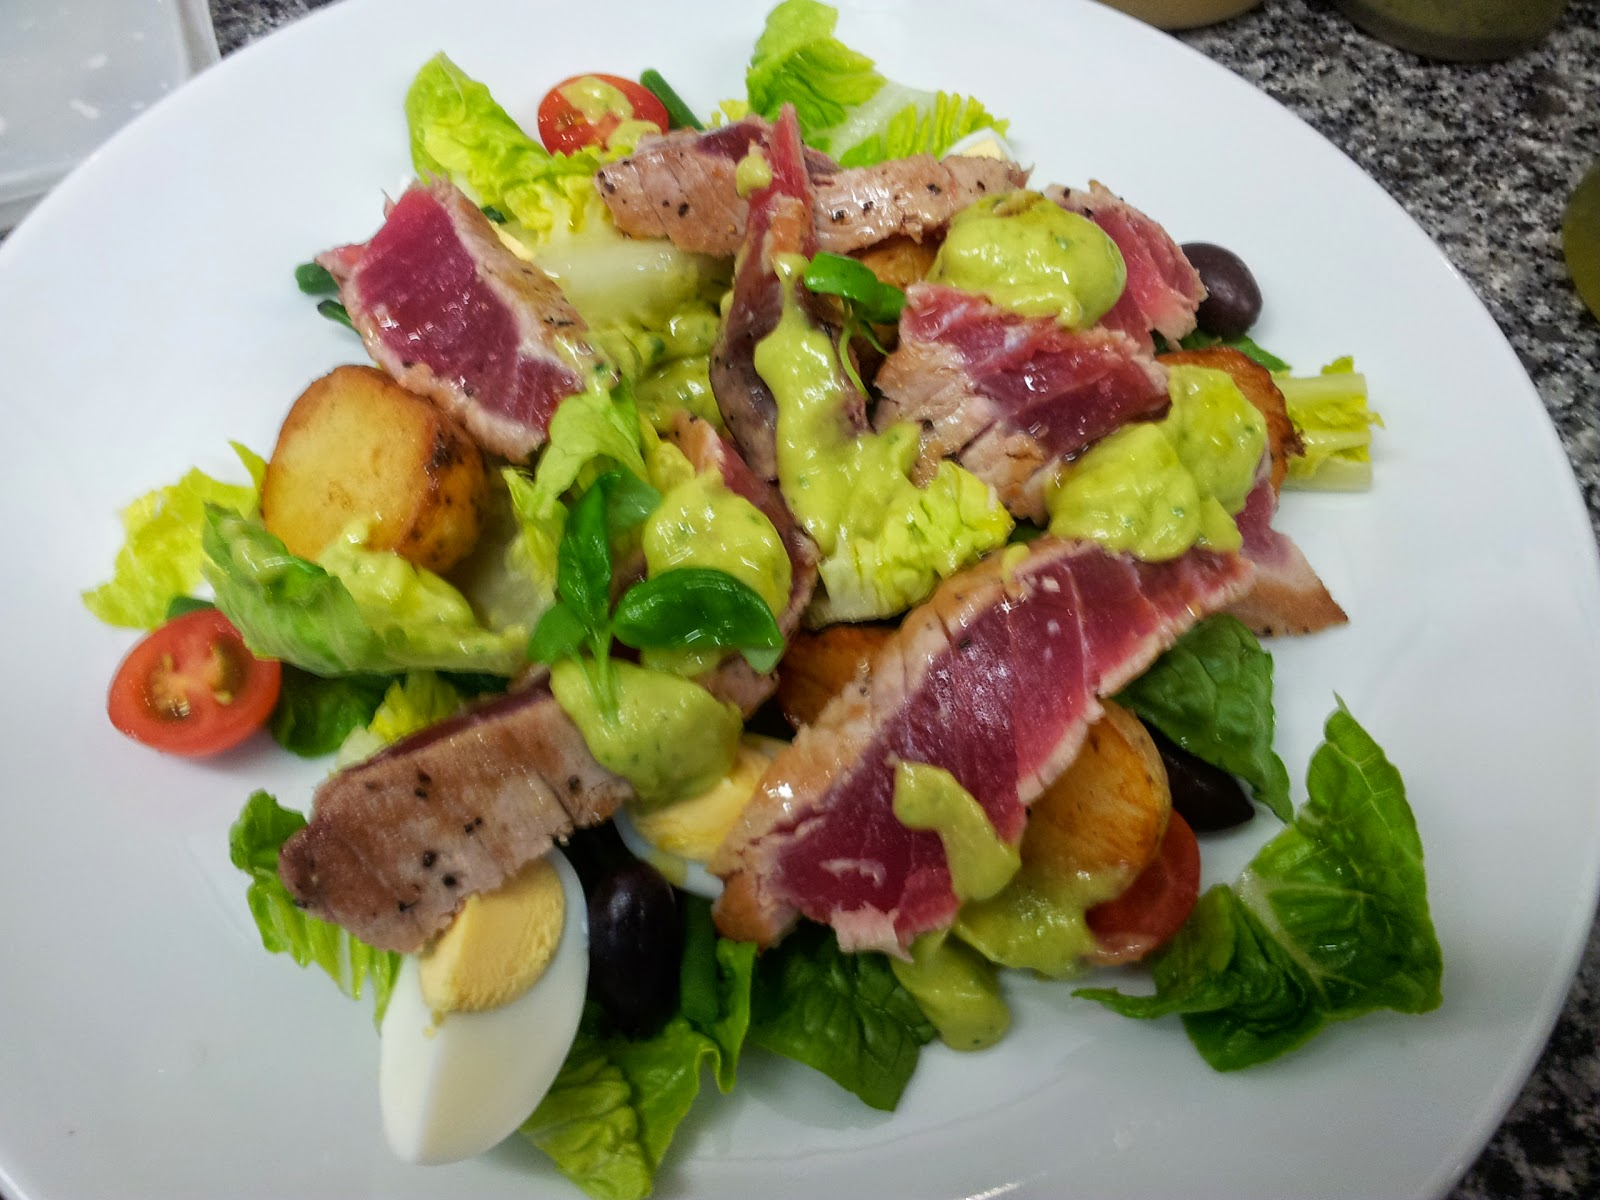 Food & pictures: Tuna with niçoise style salad